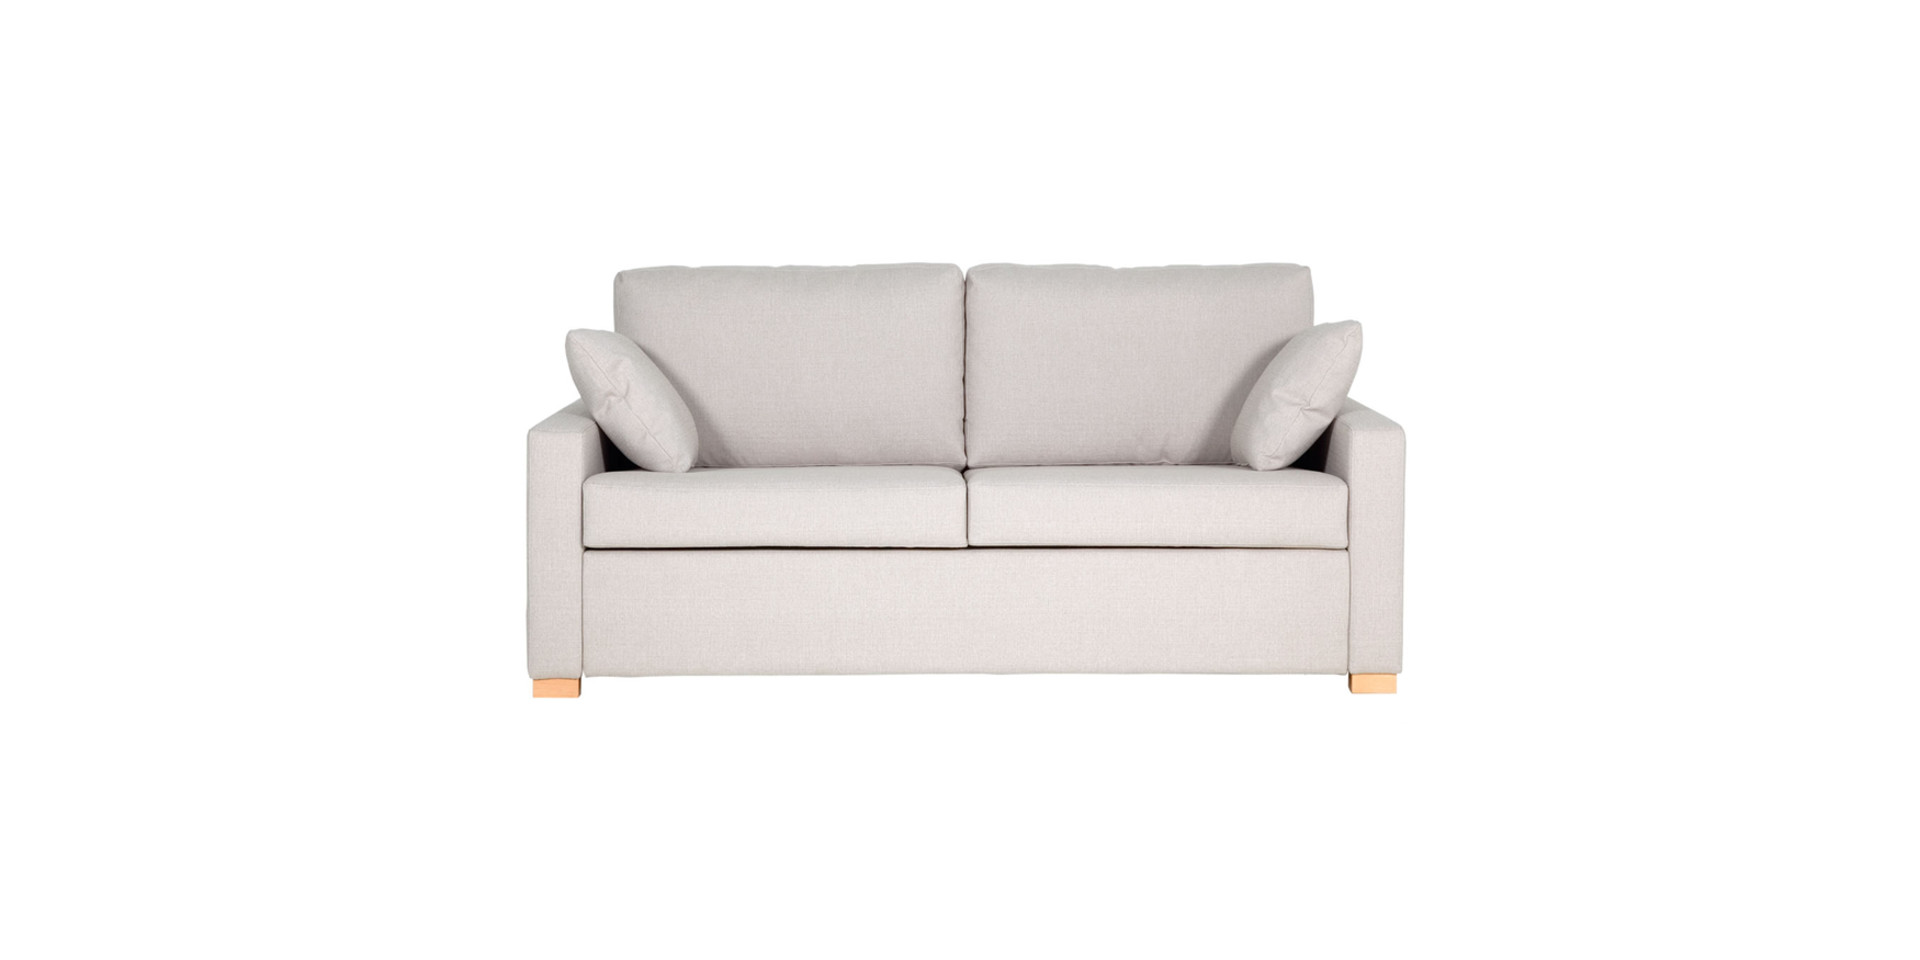 sits-tucson-canape-convertible-sofa_bed3_veraam374_beige_1